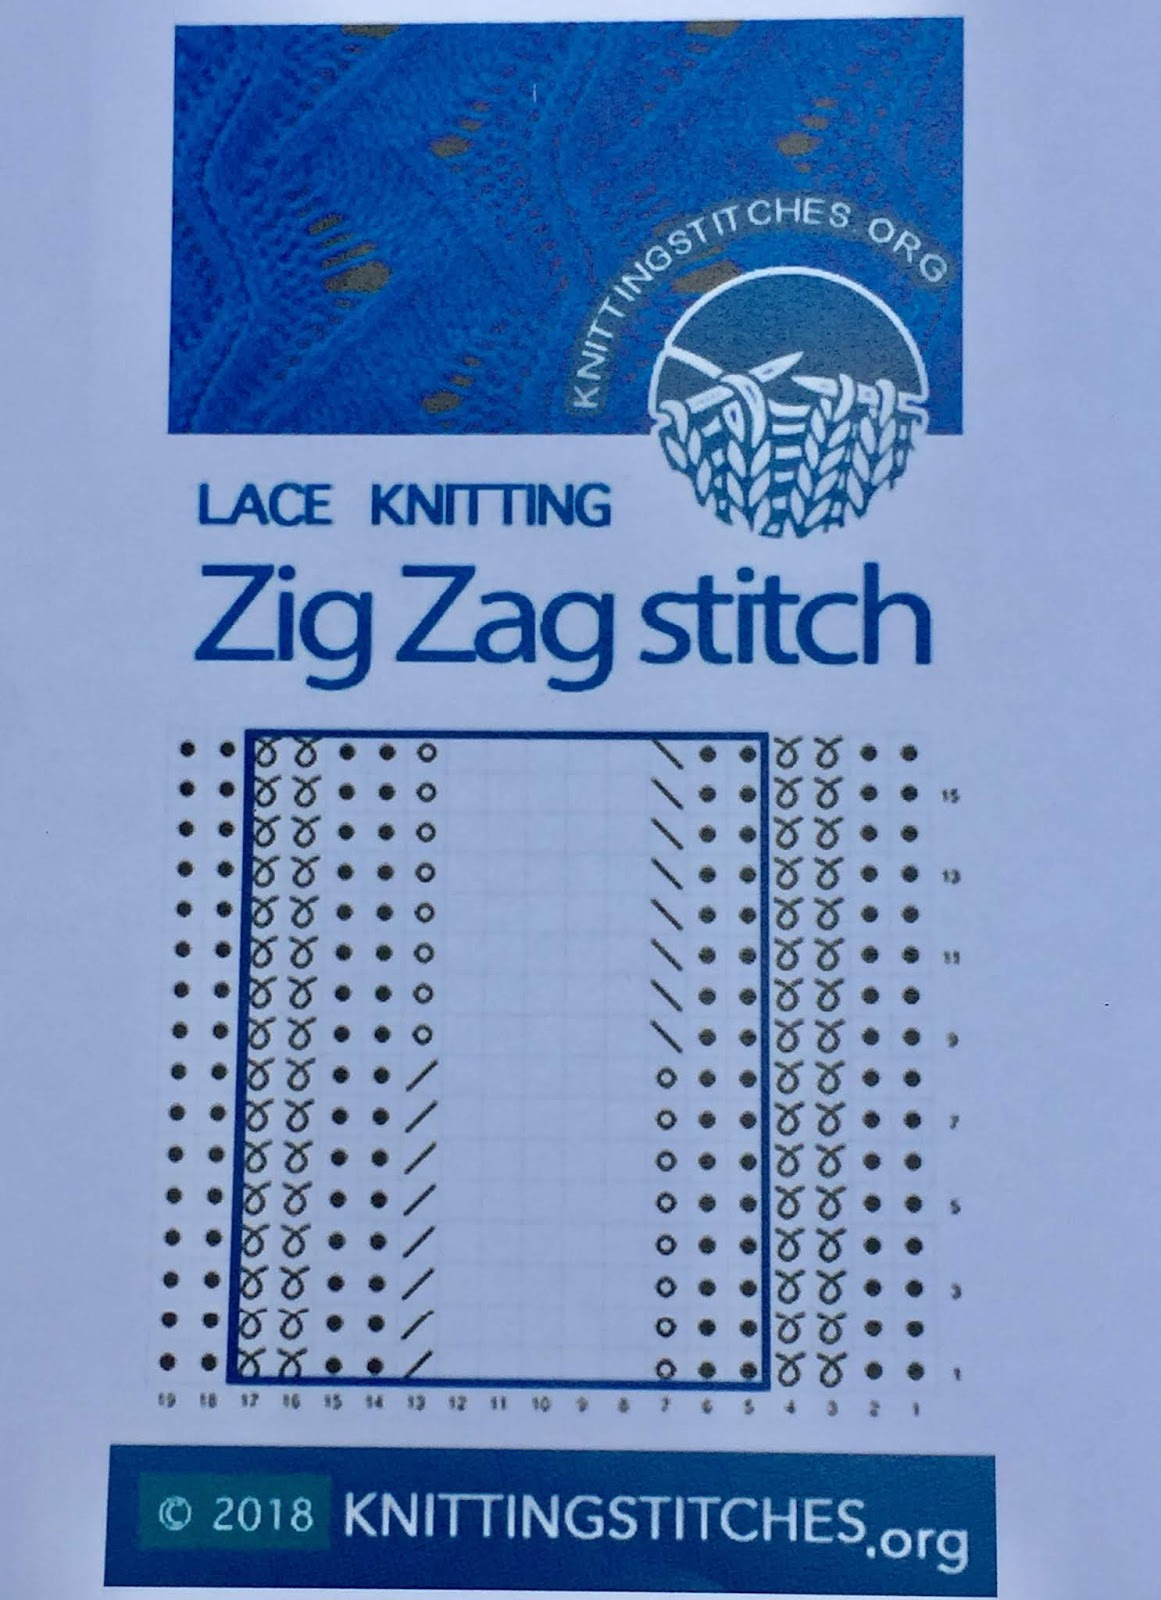 Knitting Stitches 2018 - Zig Zag stitch pattern